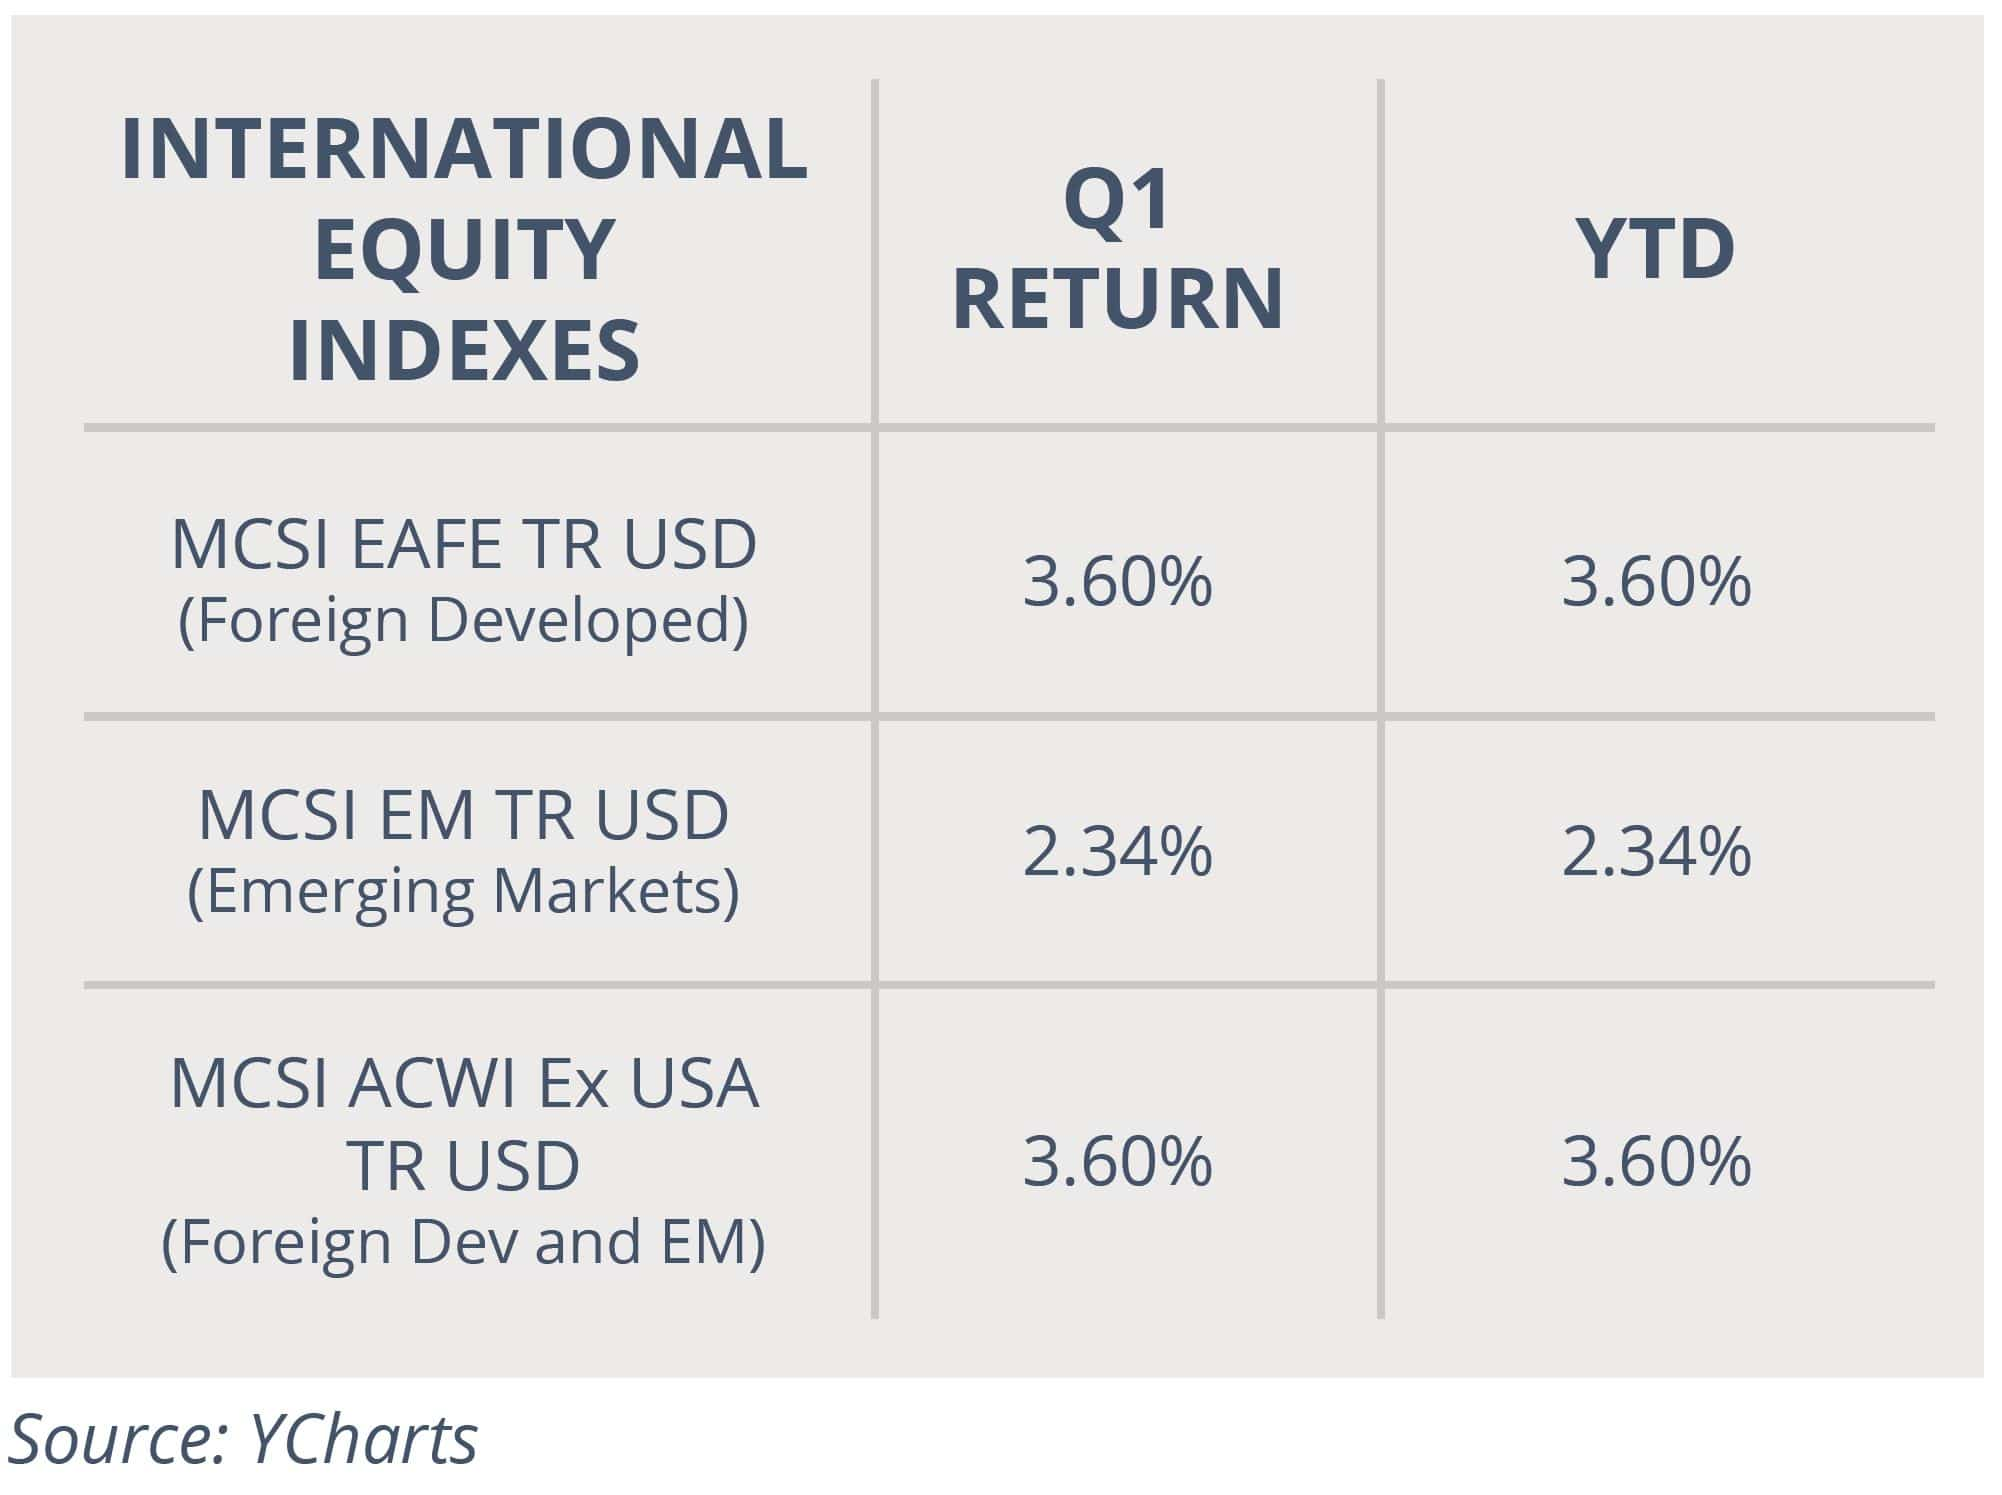 International Equity Indexes April 2021